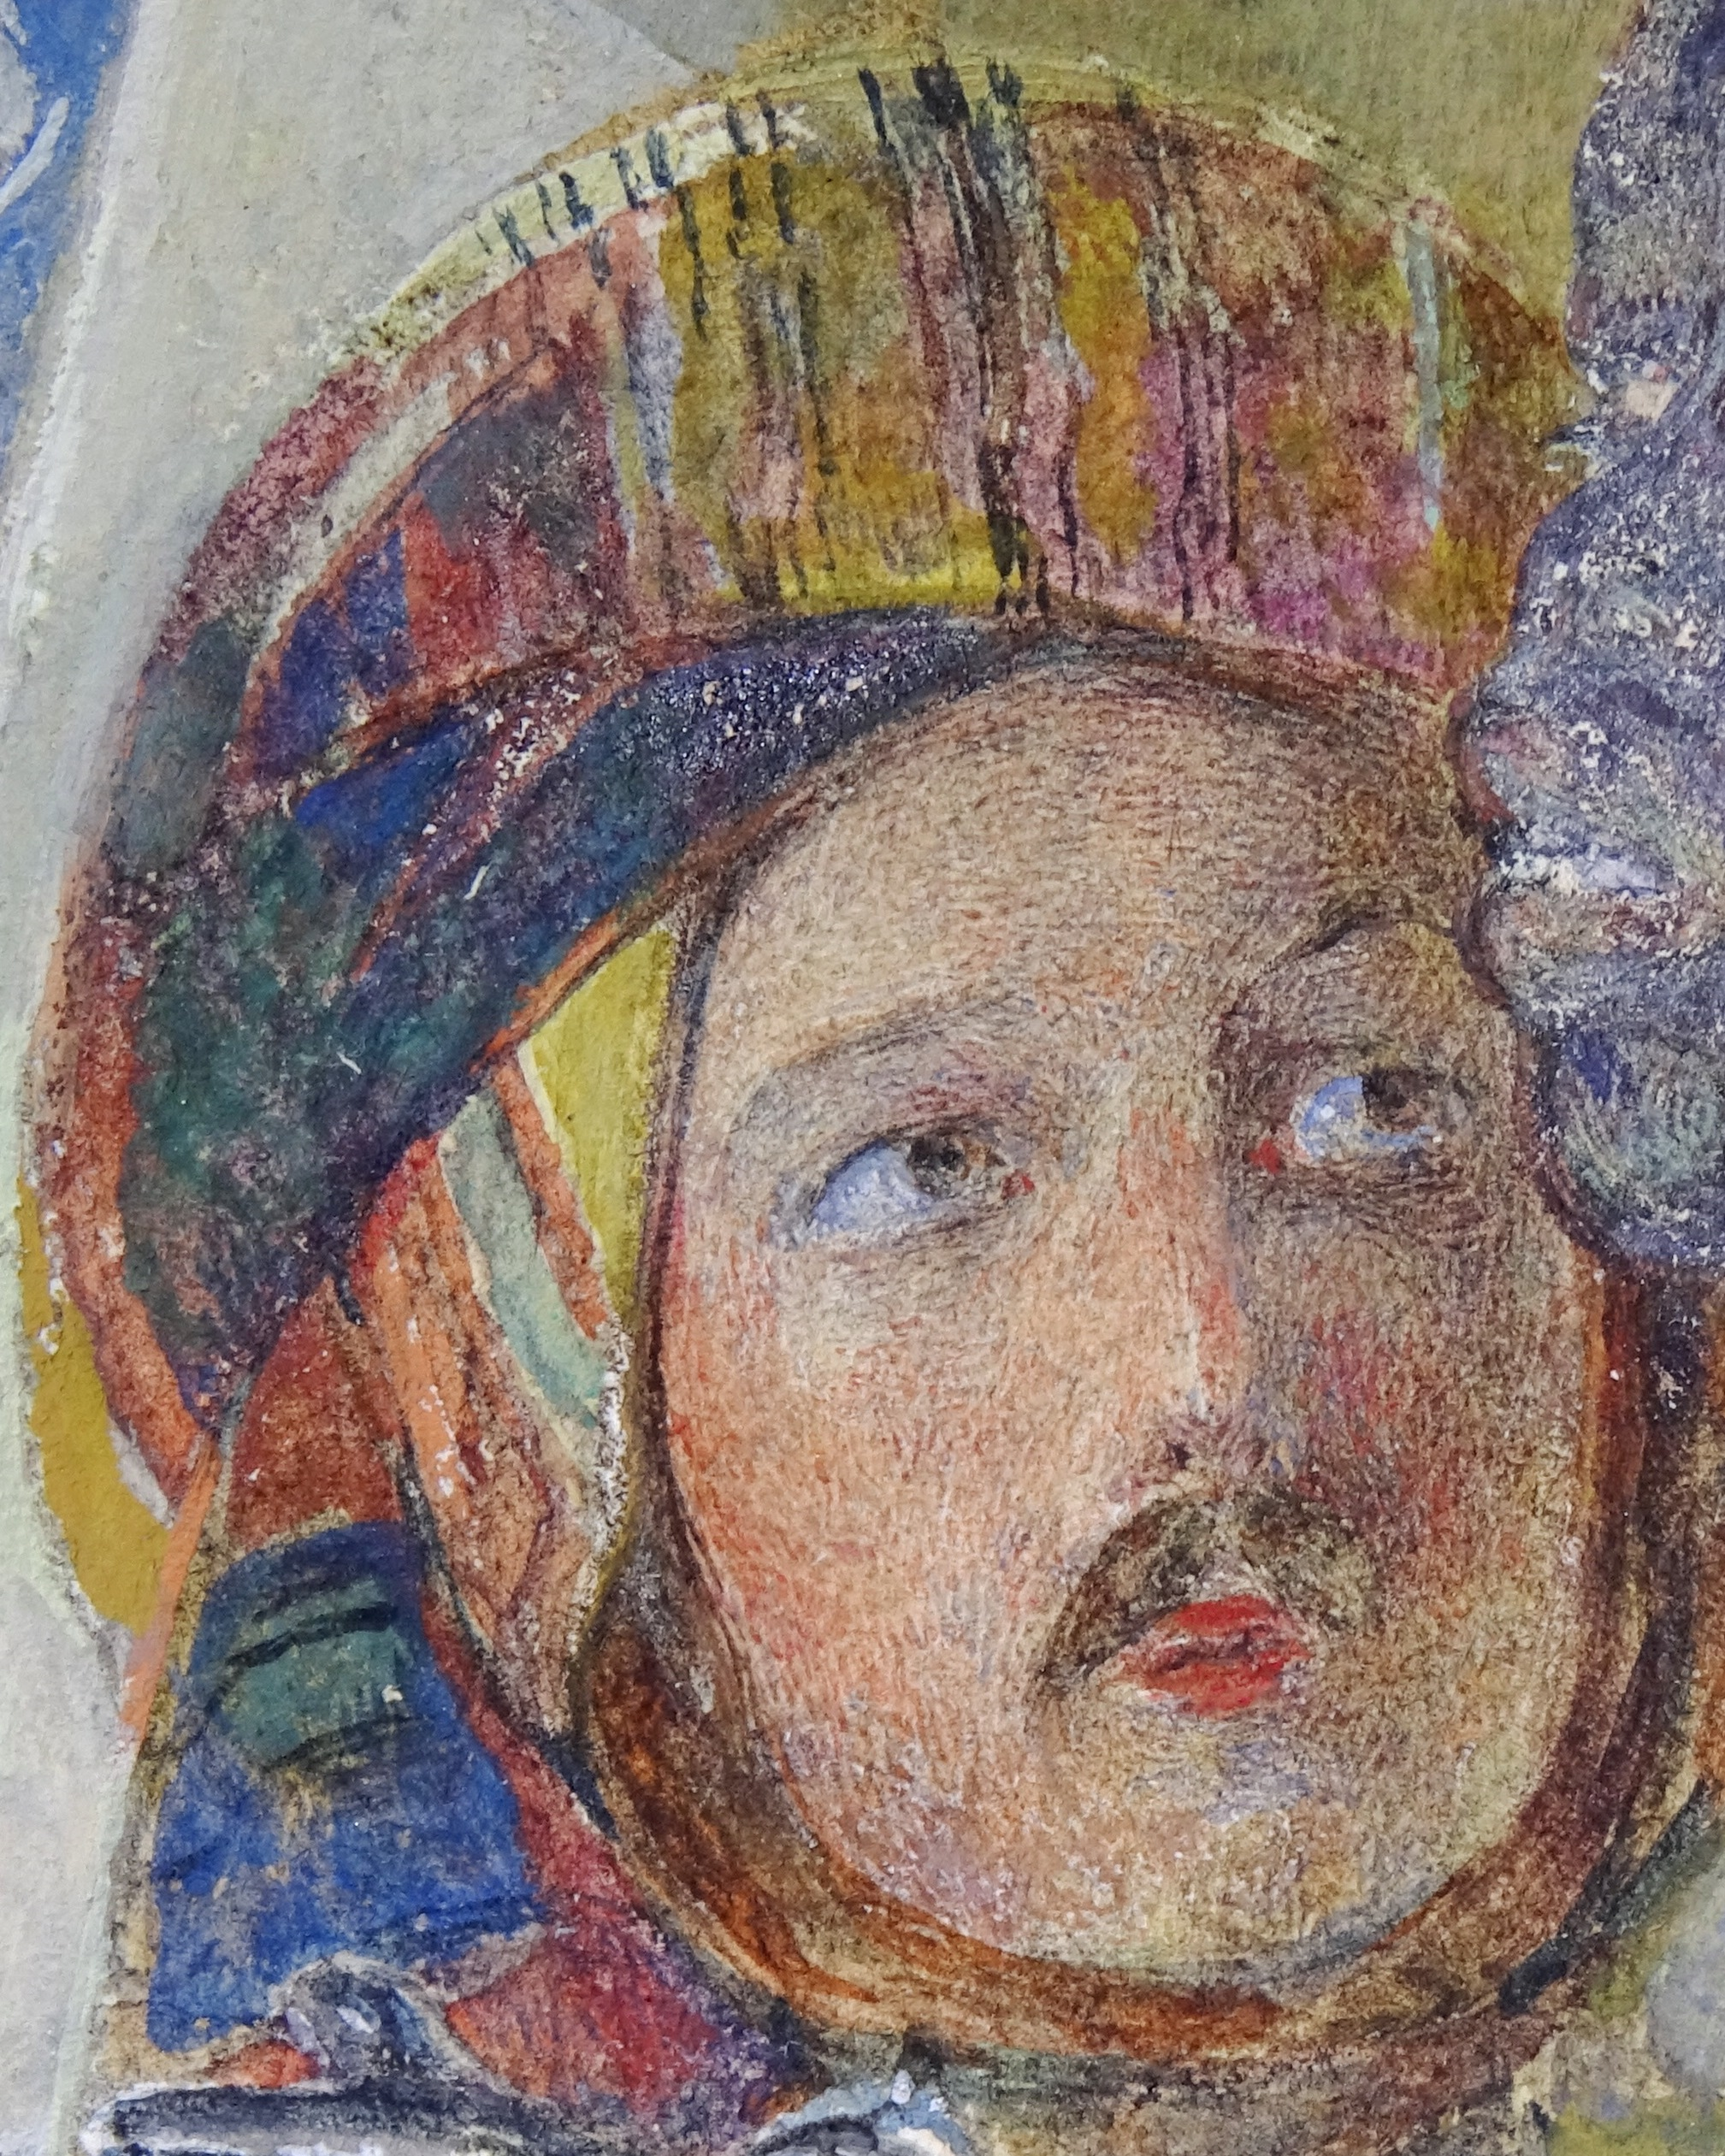 Small pinpoint losses of watercolor seen in dark bands of the hat and in the partial face on the right, detail of John Frederick Lewis's A Frank Encampment in the Desert of Mount Sinai, photo by Richard Caspole